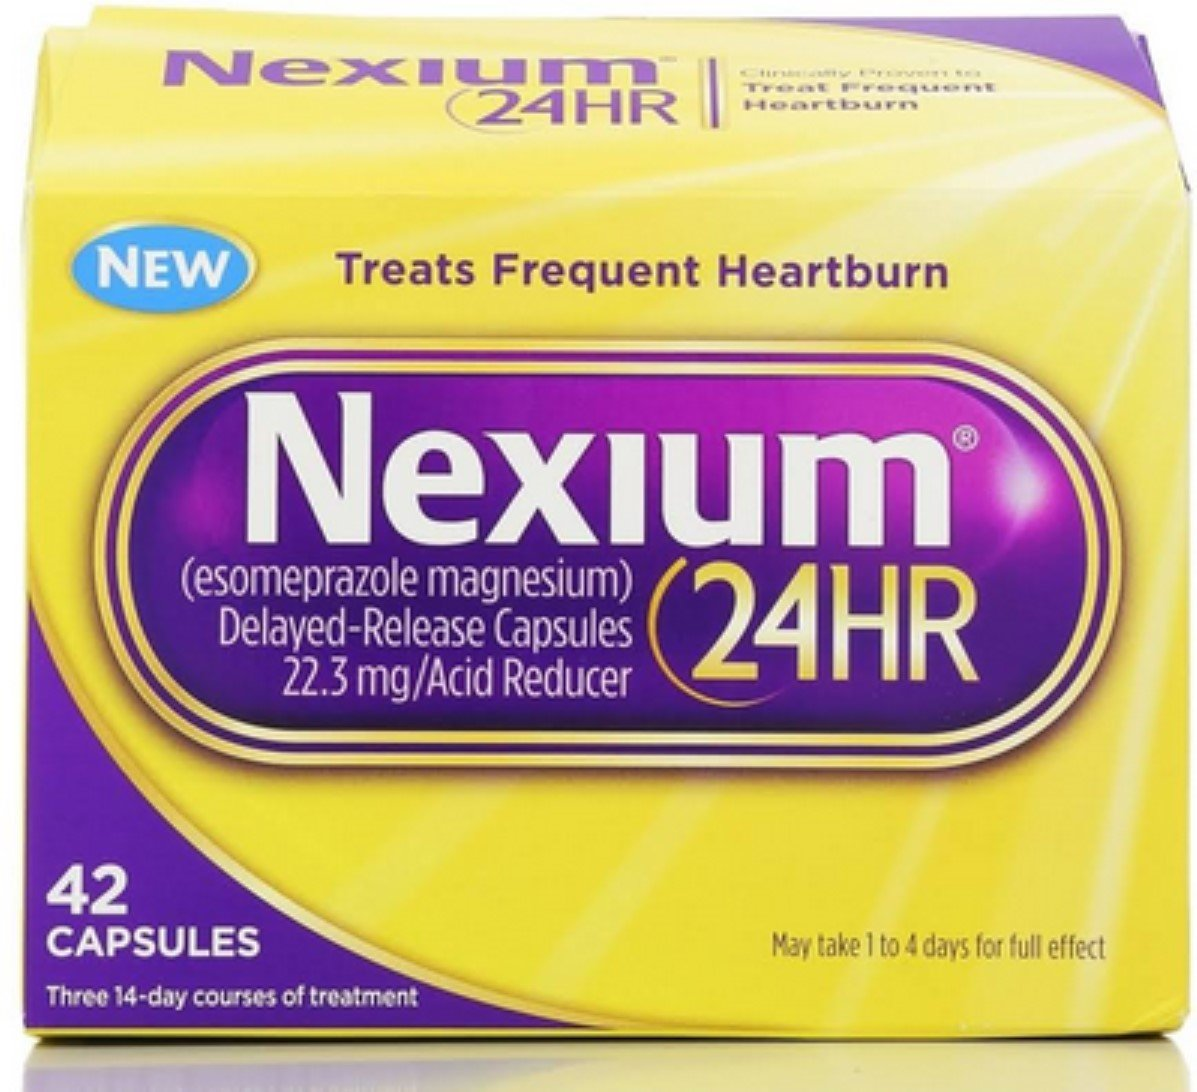 Nexium 24HR Capsules 42 ea (Pack of 6) by Nexium